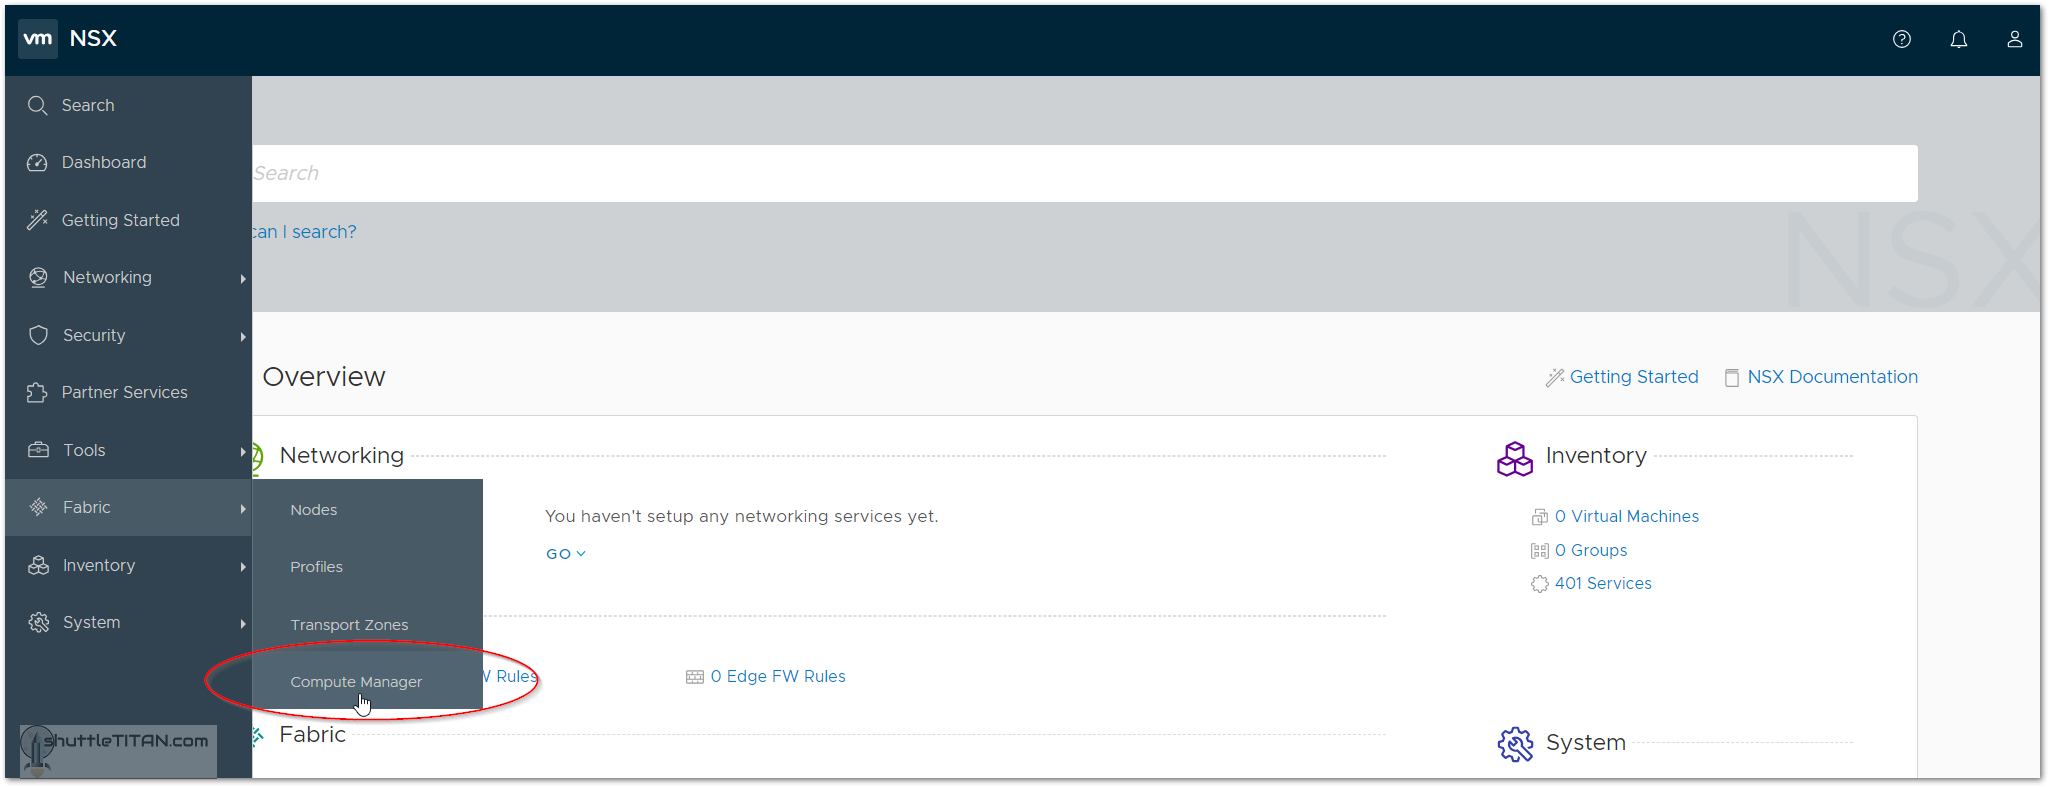 NSX-T v2.3 Installation: Step 2 – Add Compute Manager